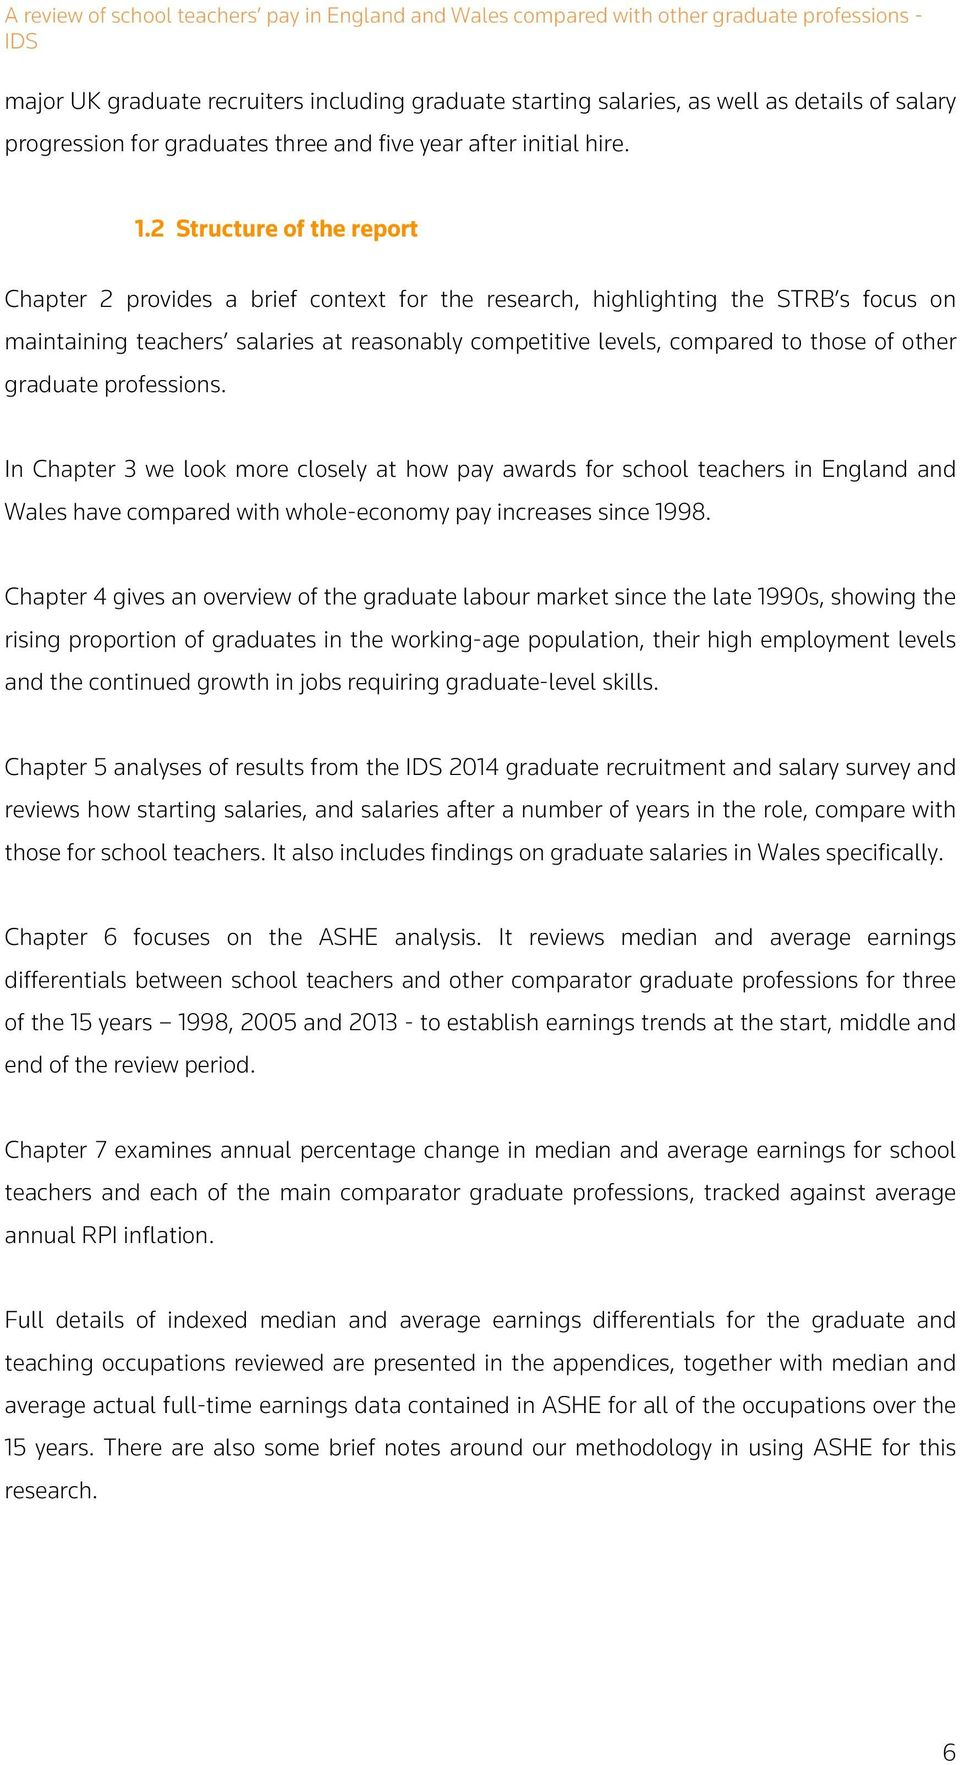 graduate professions. In Chapter 3 we look more closely at how pay awards for school in England and Wales have compared with whole-economy pay increases since 1998.